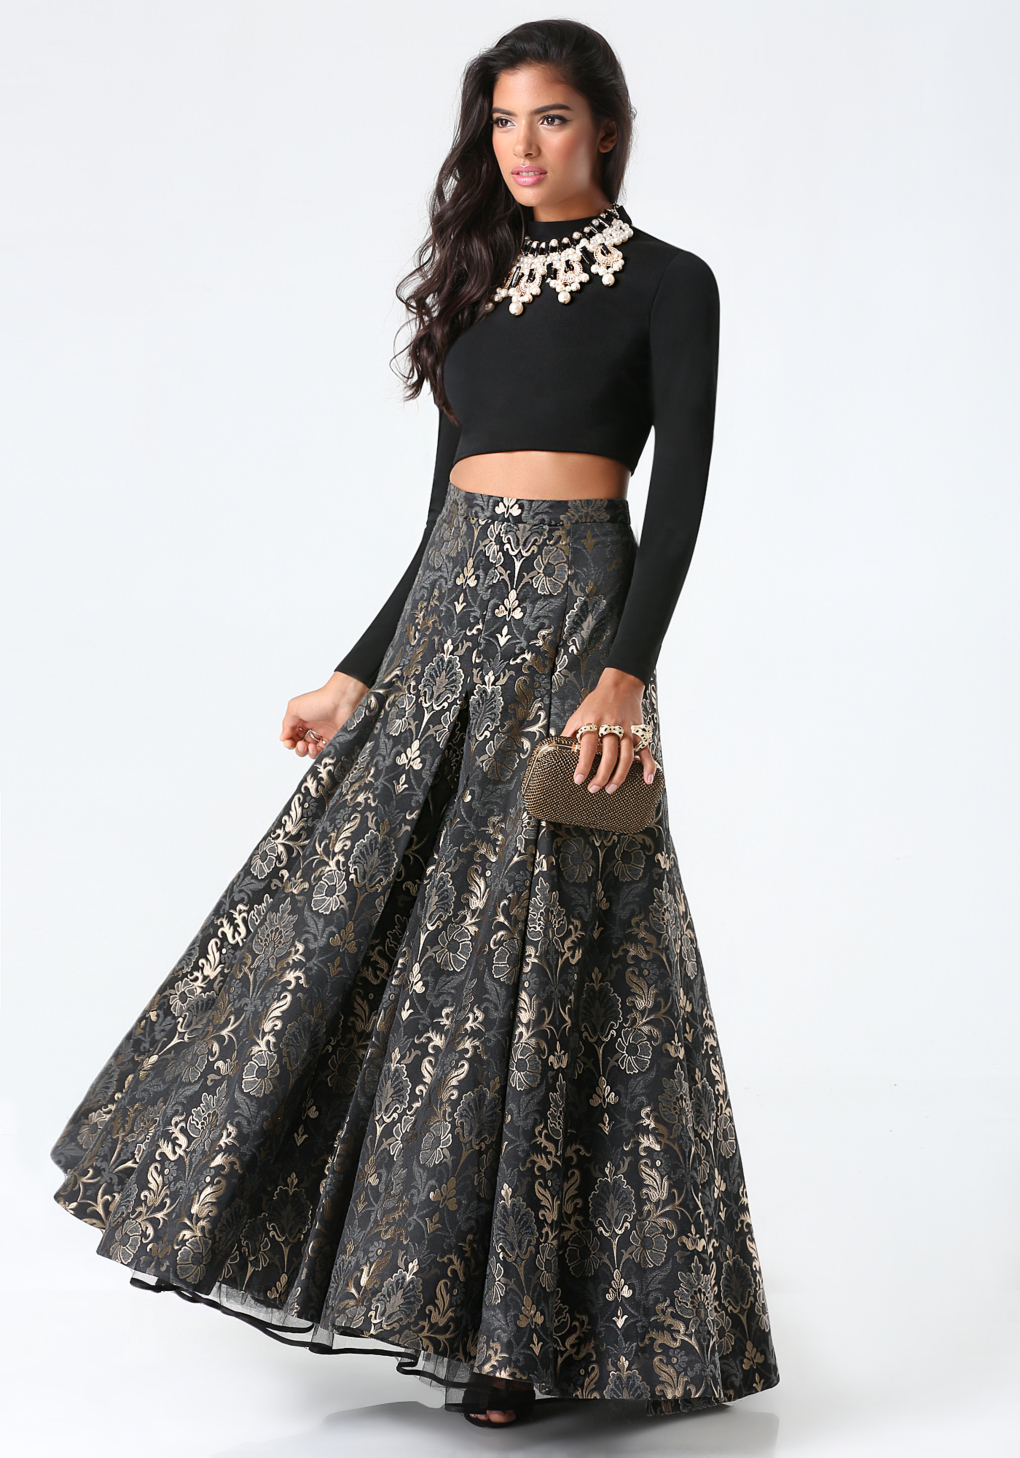 Lyst - Bebe Jacquard 2-piece Gown in Black